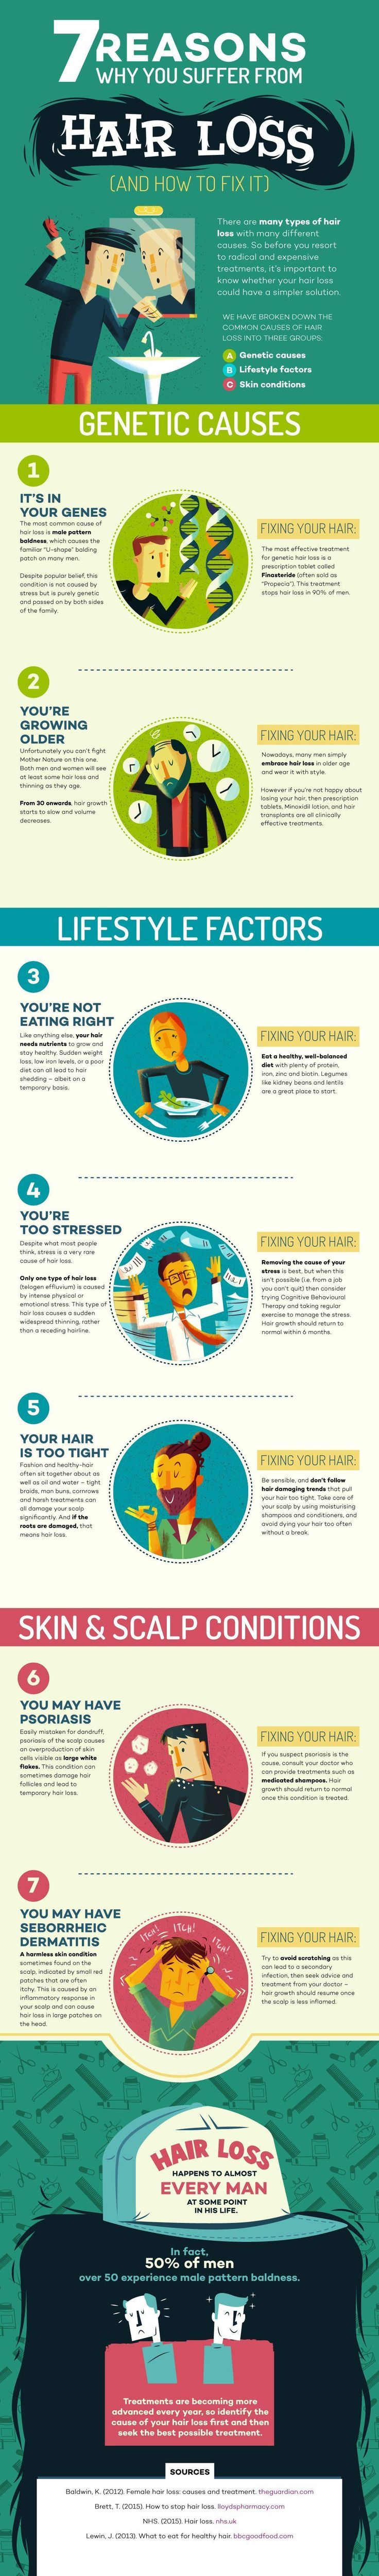 7 Reasons You're Suffering From Hairloss #hairlossmencauses